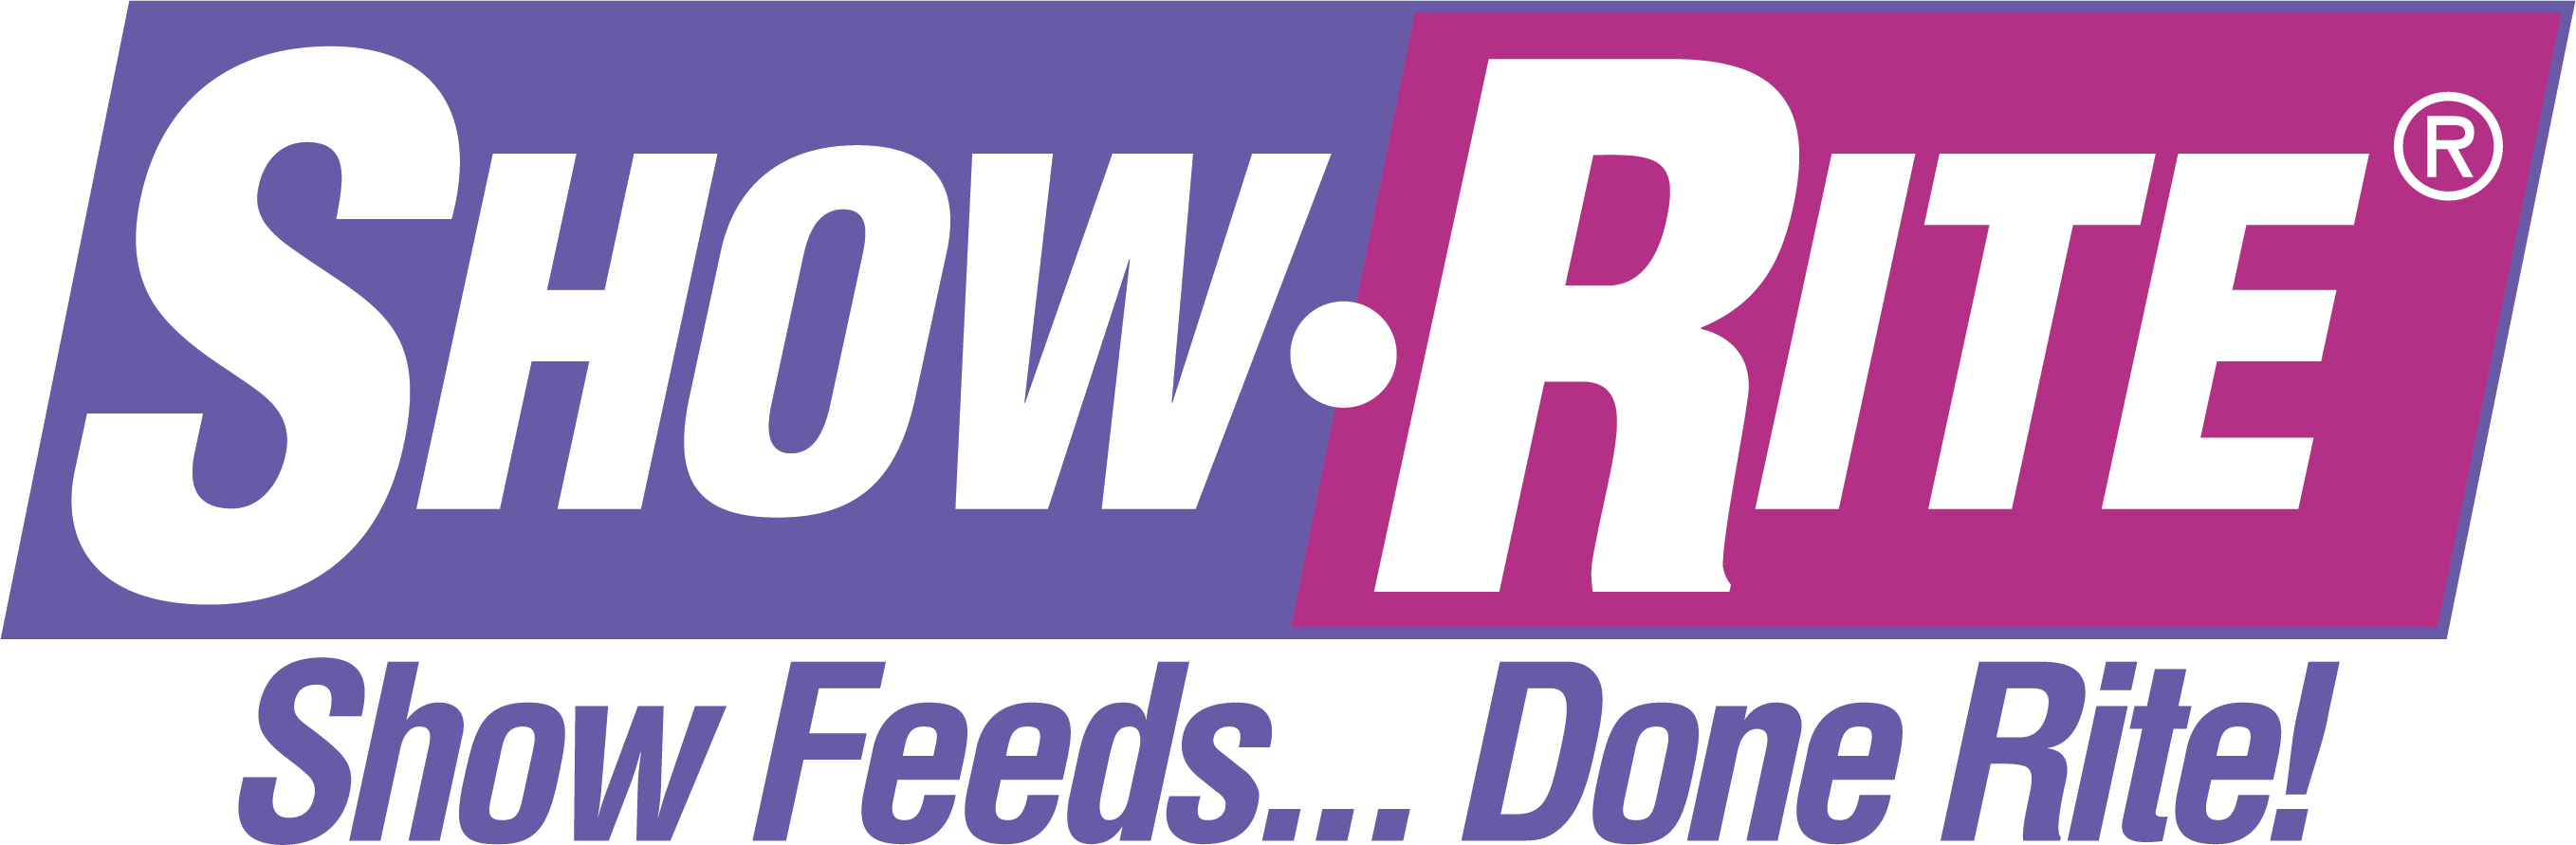 ShowRite Logo - NEW.PNG